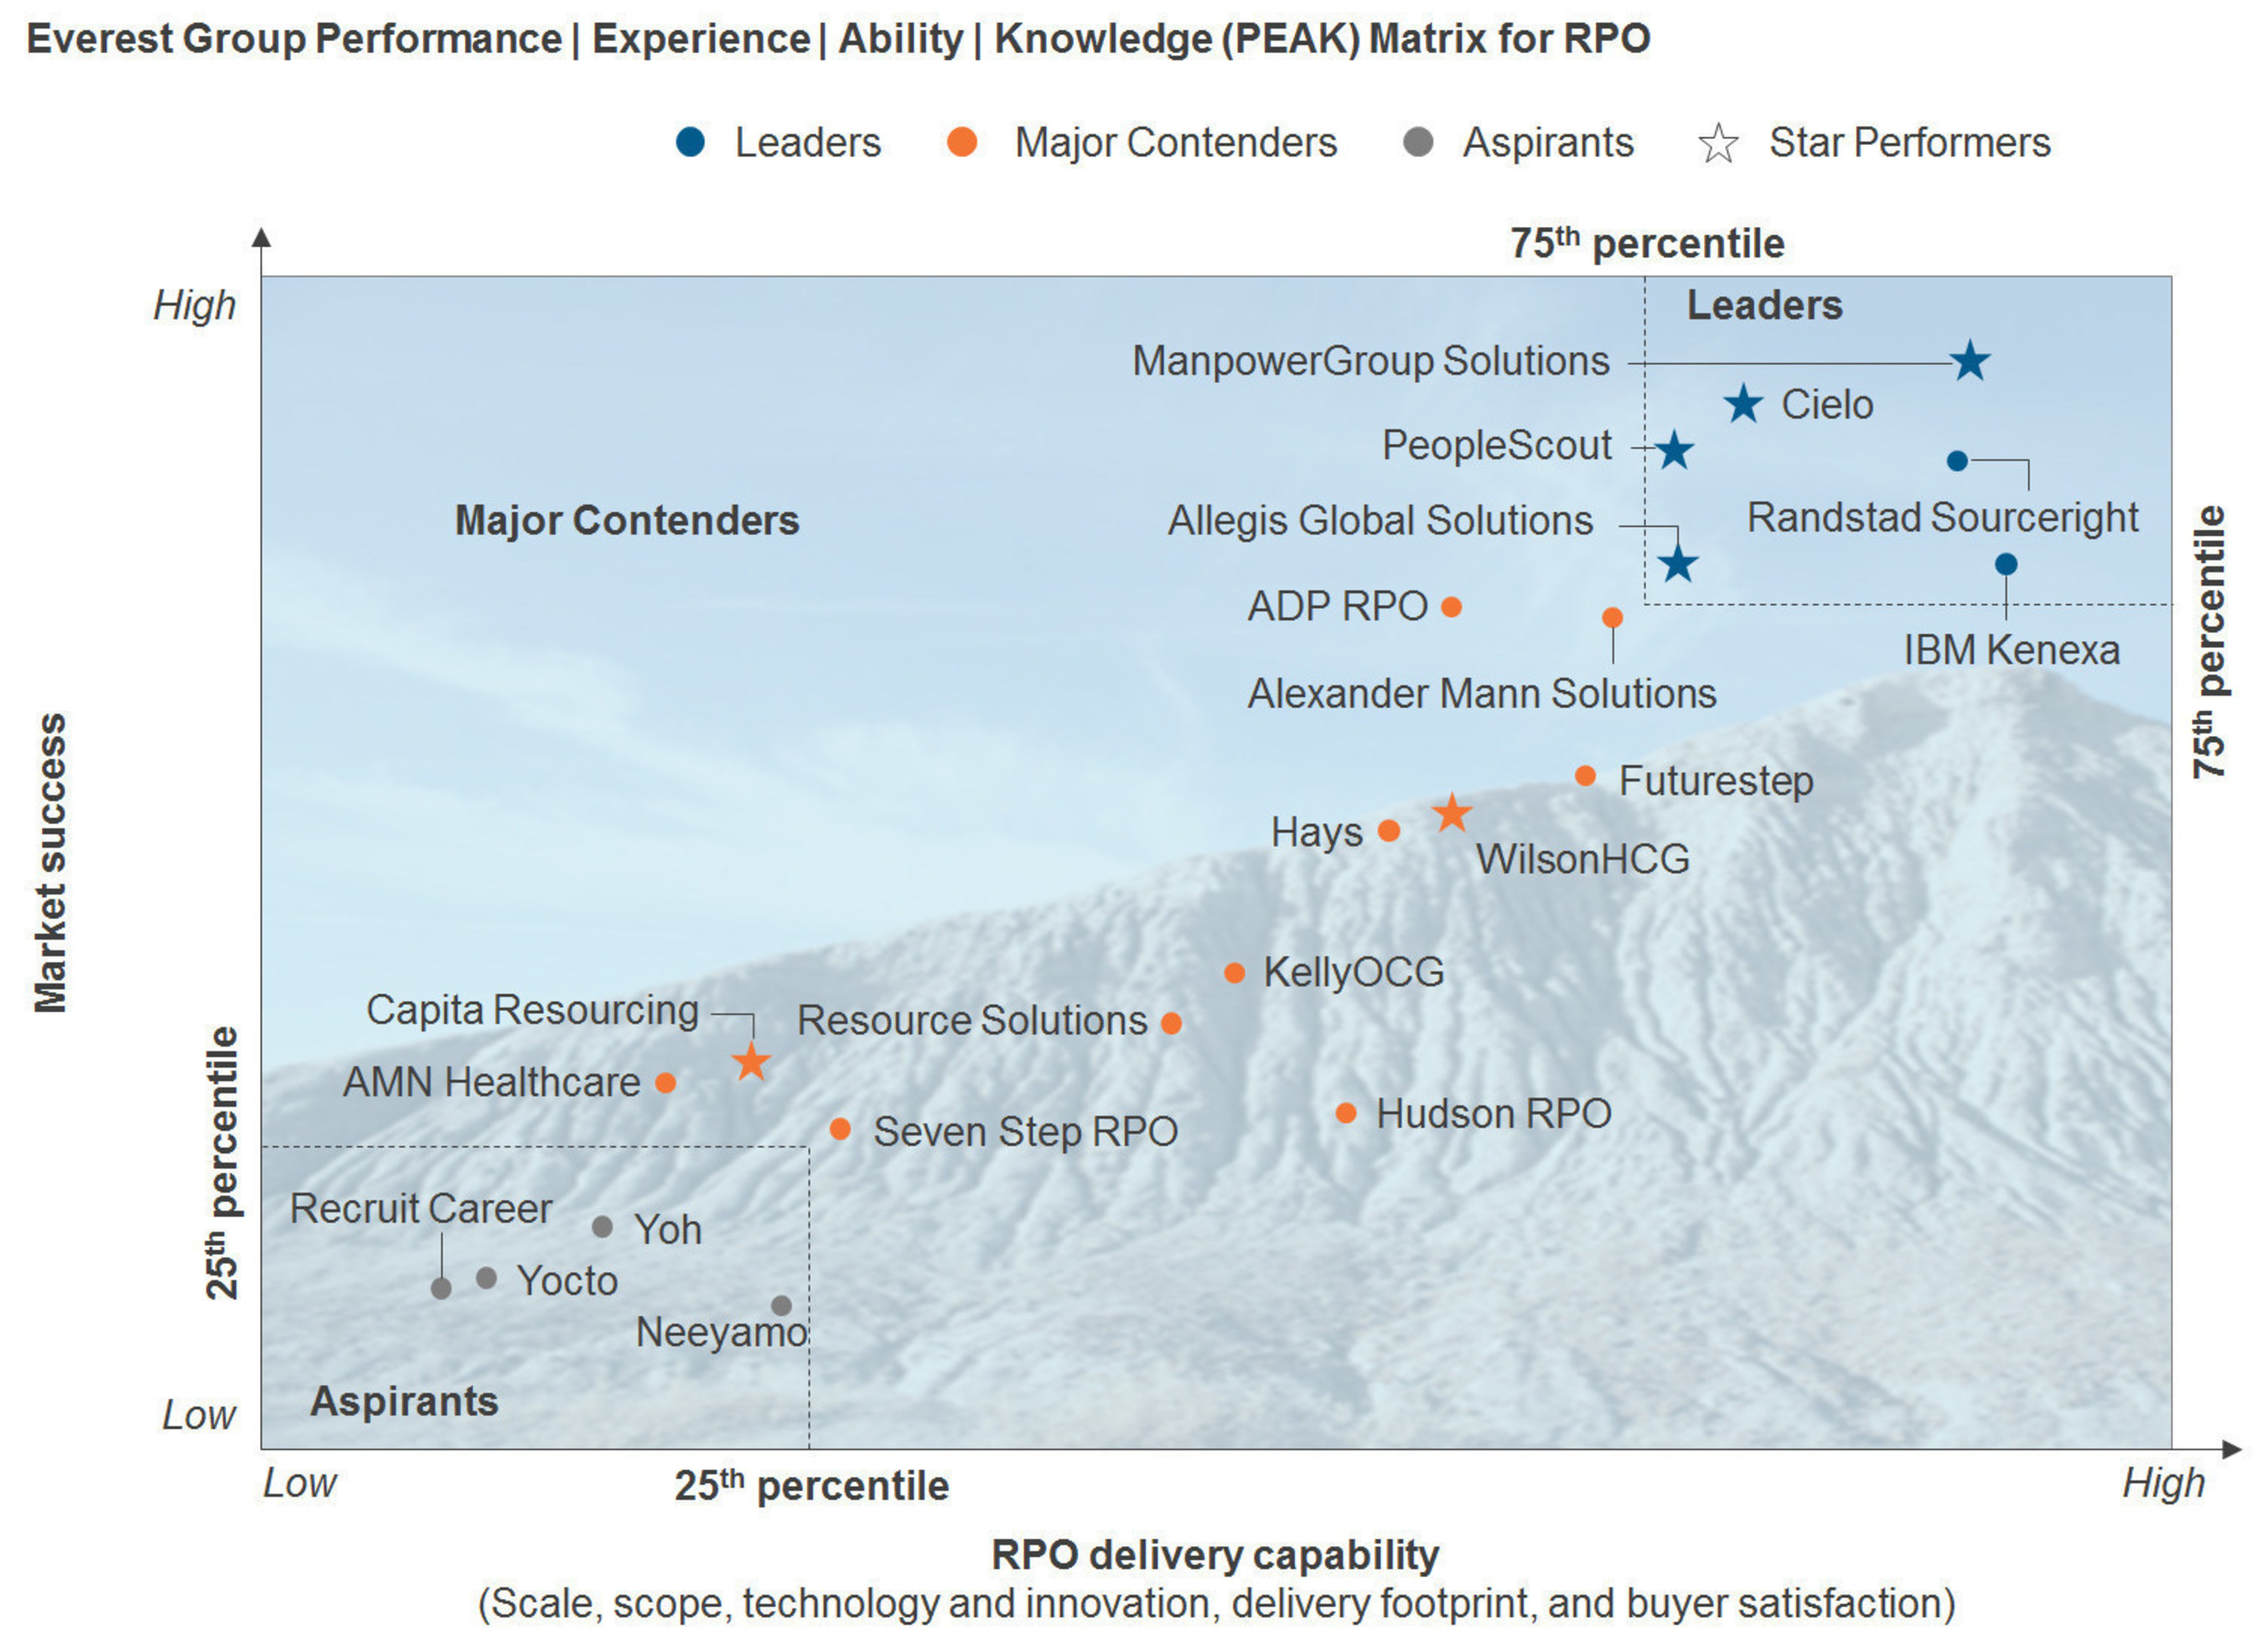 ManpowerGroup Solutions has been recognized as a top performer in Everest Group's Recruitment Process Outsourcing report for the 6th consecutive year.